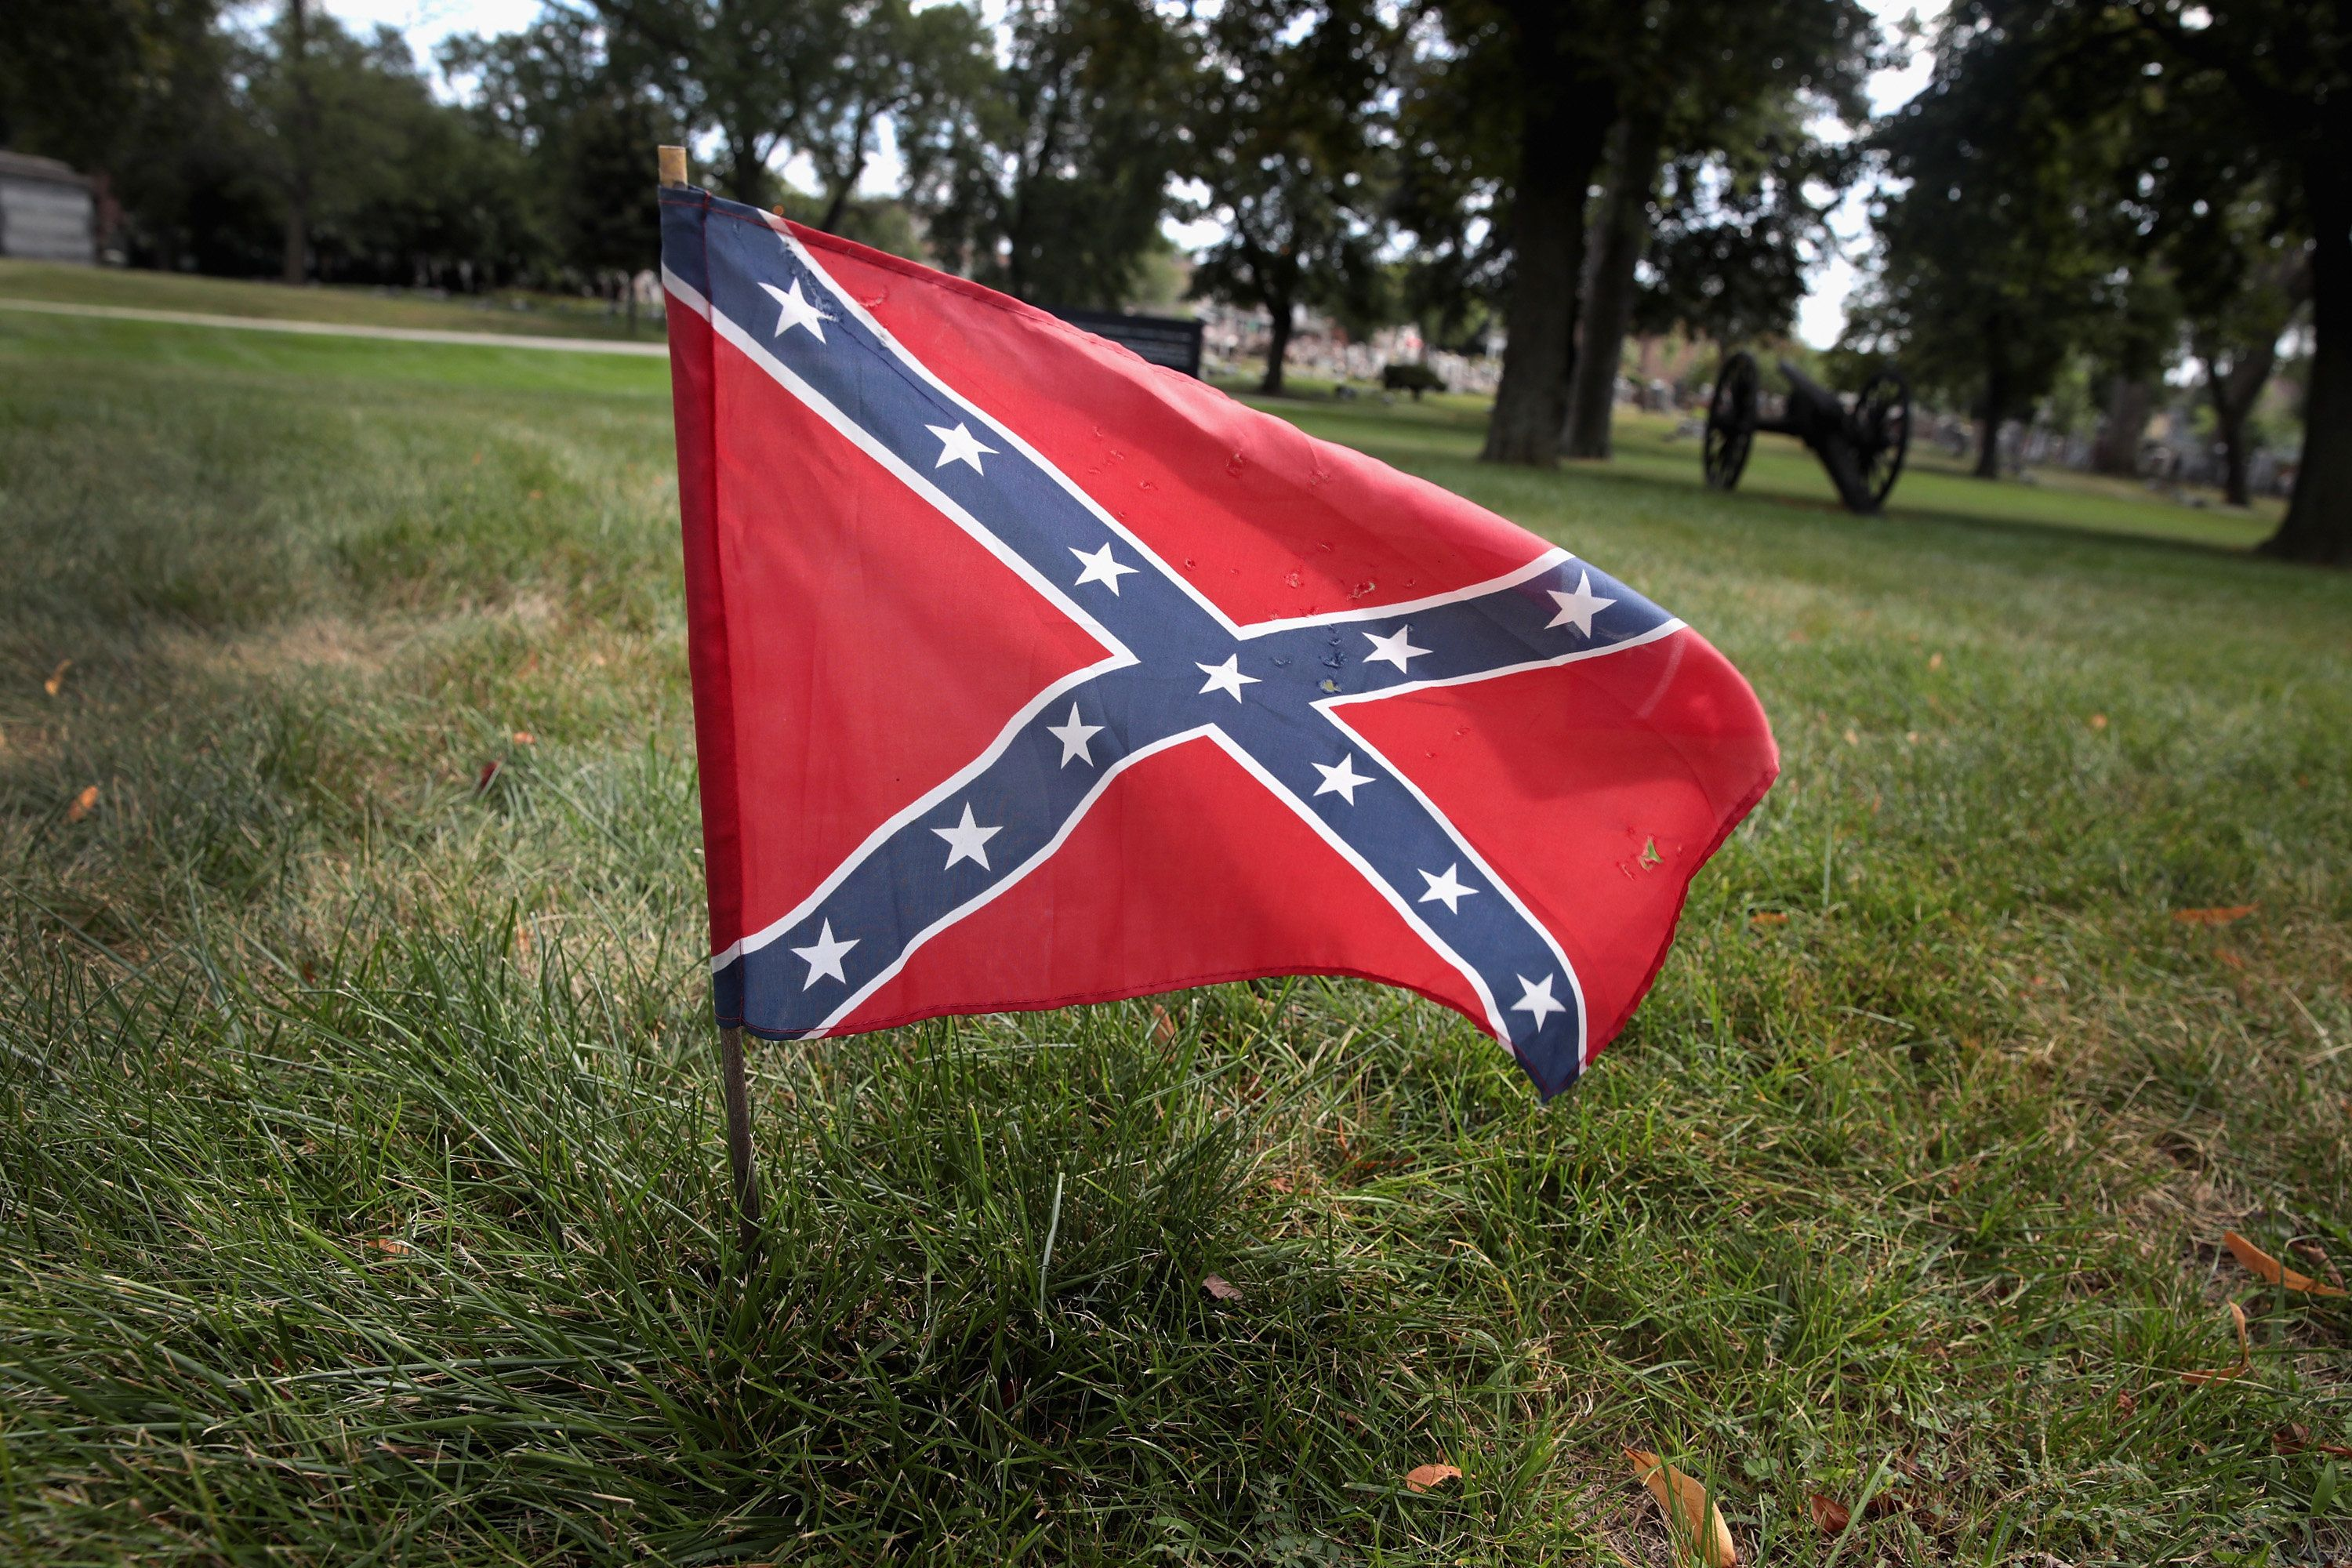 This Student Mocked The Confederate Flag And Received Death Threats For It